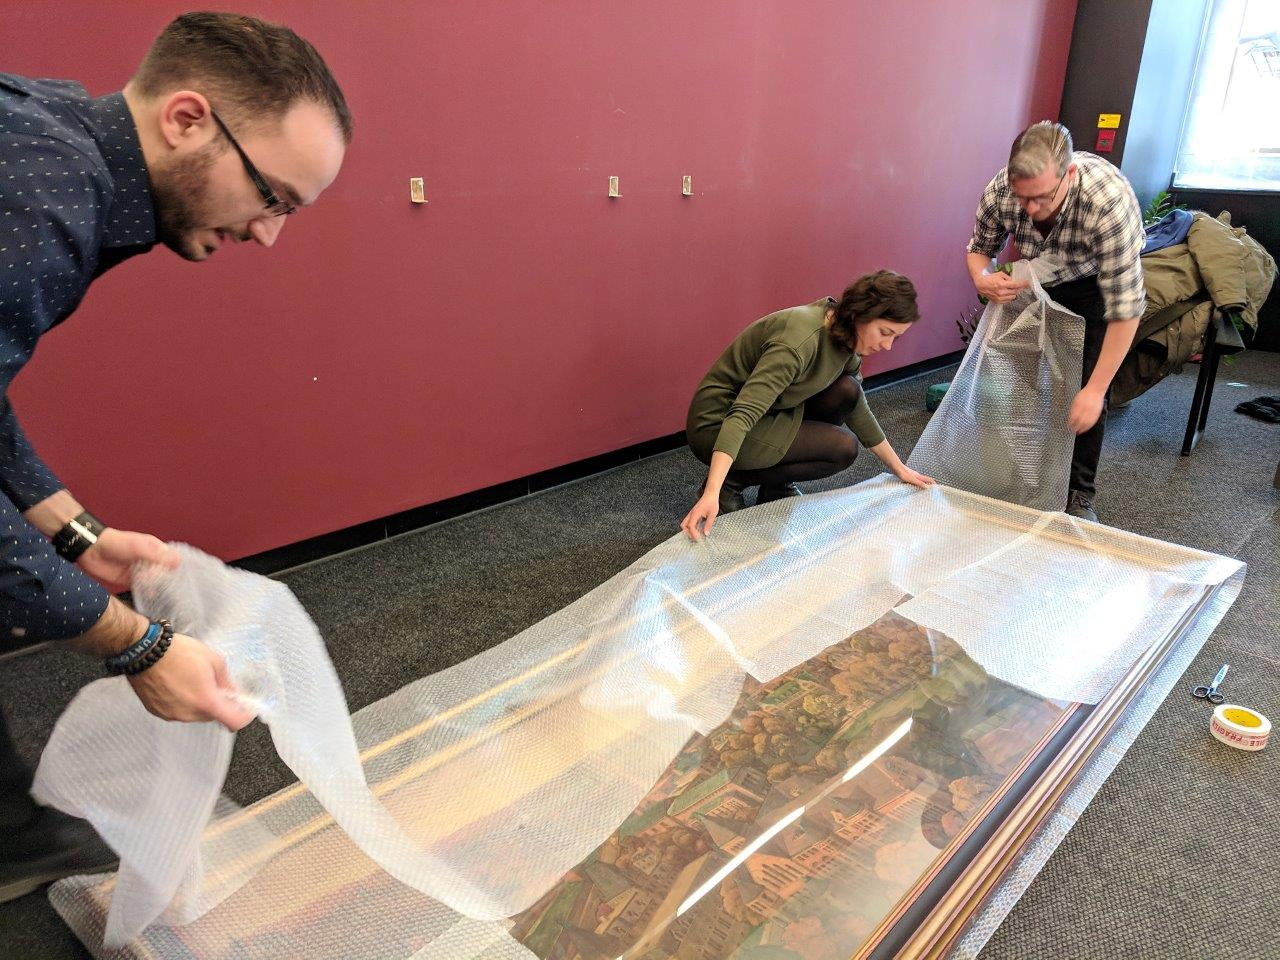 Staff wrapping the Nobbs in bubble wrap before the move. Photo: Merika Ramundo